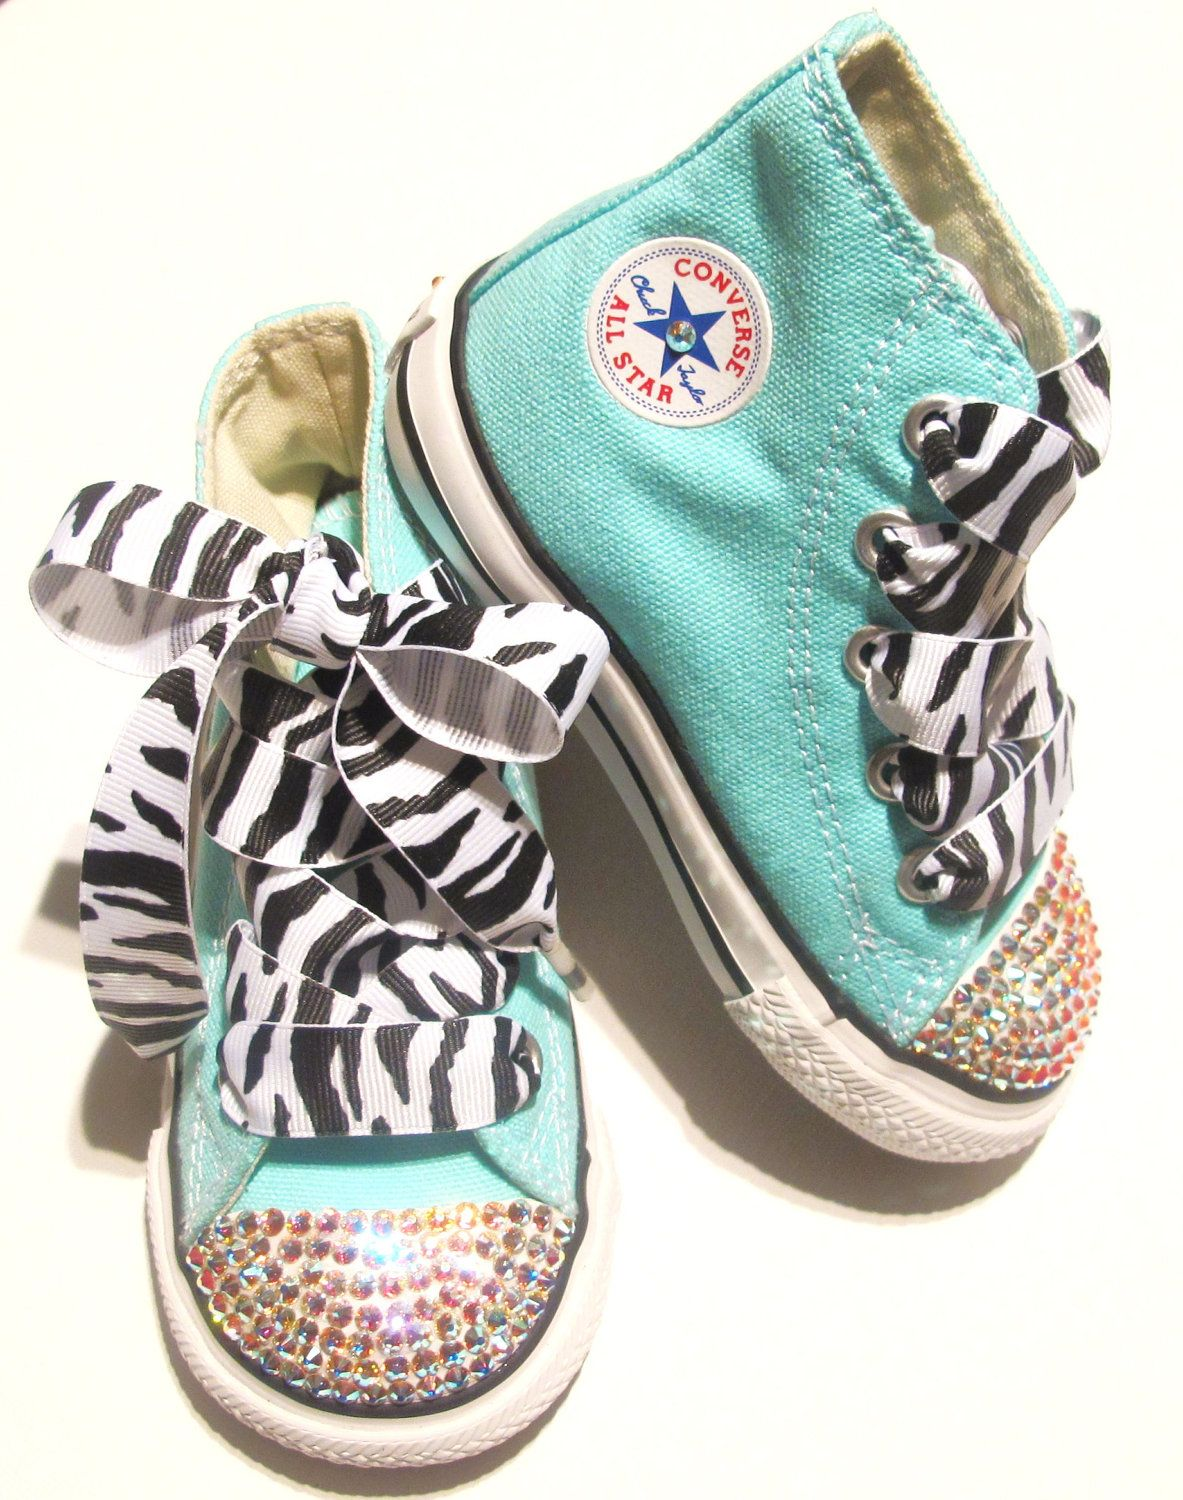 Tiffany blue bling Converse hightop sneakers covered in